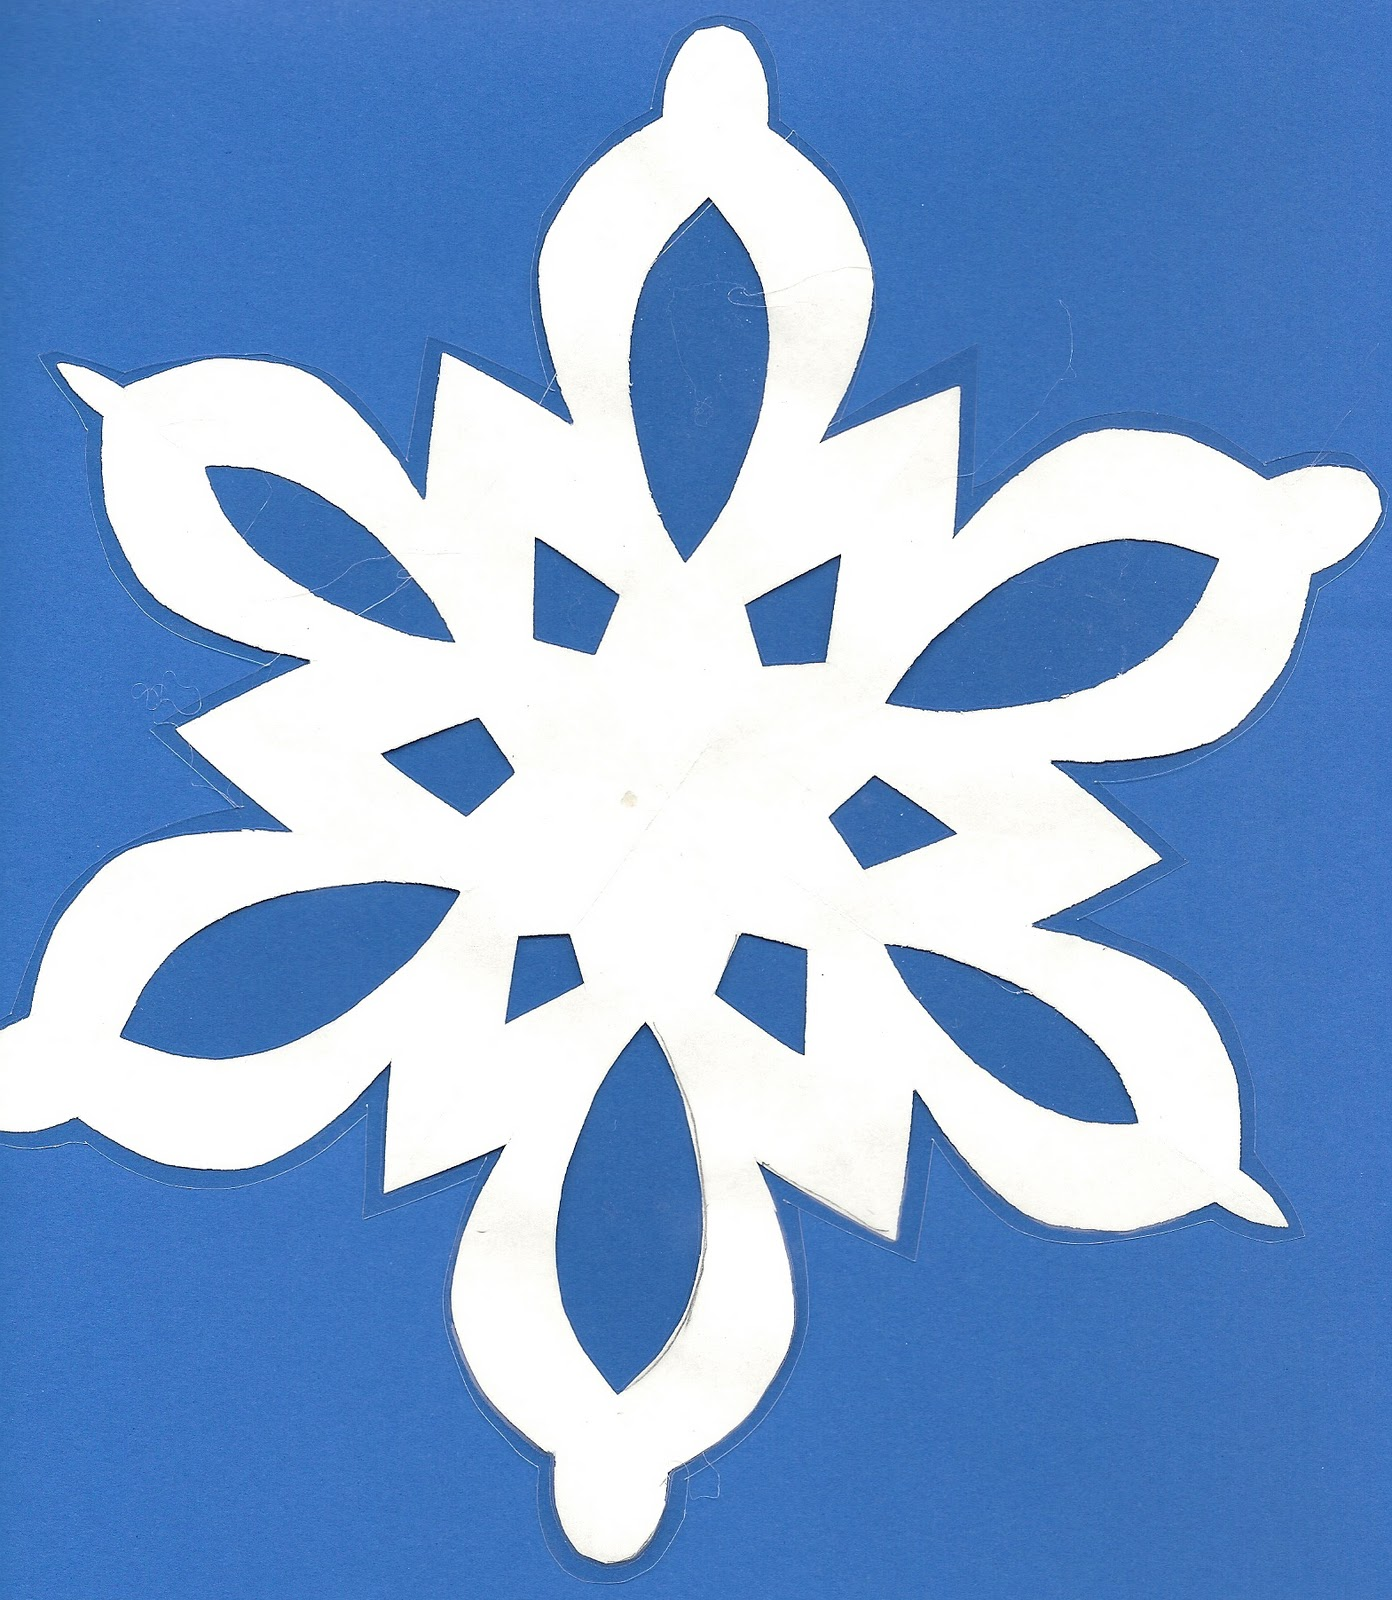 Paper Snowflakes Decorations Printable Snowflake Patterns To Cut Out